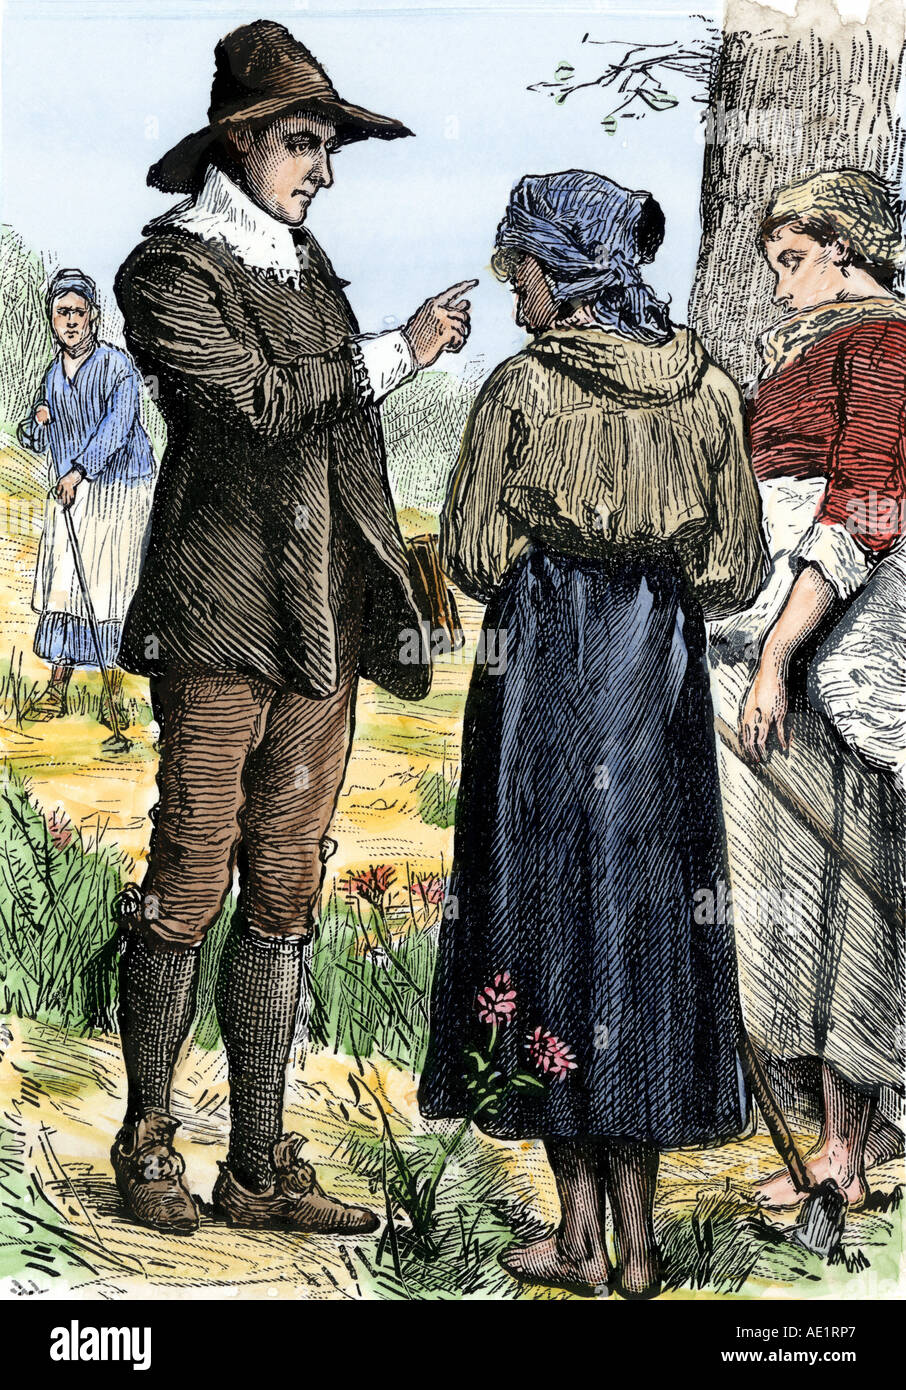 Quaker founder George Fox talking with women in a field 1600s. Hand-colored woodcut - Stock Image